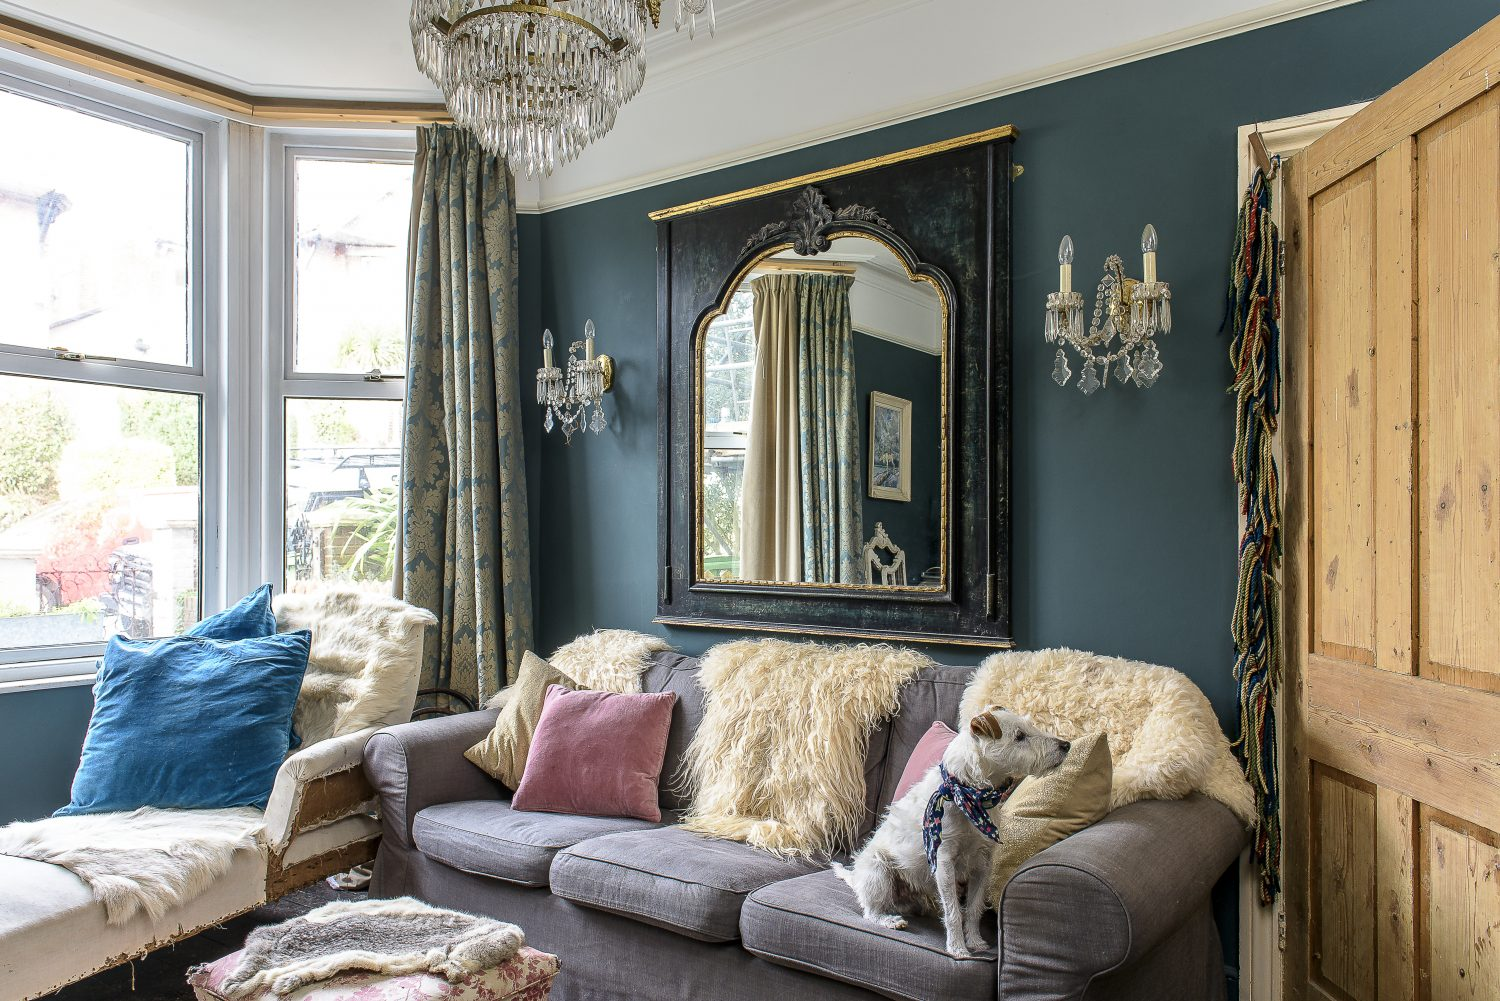 The sitting room has a real parlour feeling, with a splendid chandelier and wall sconces.